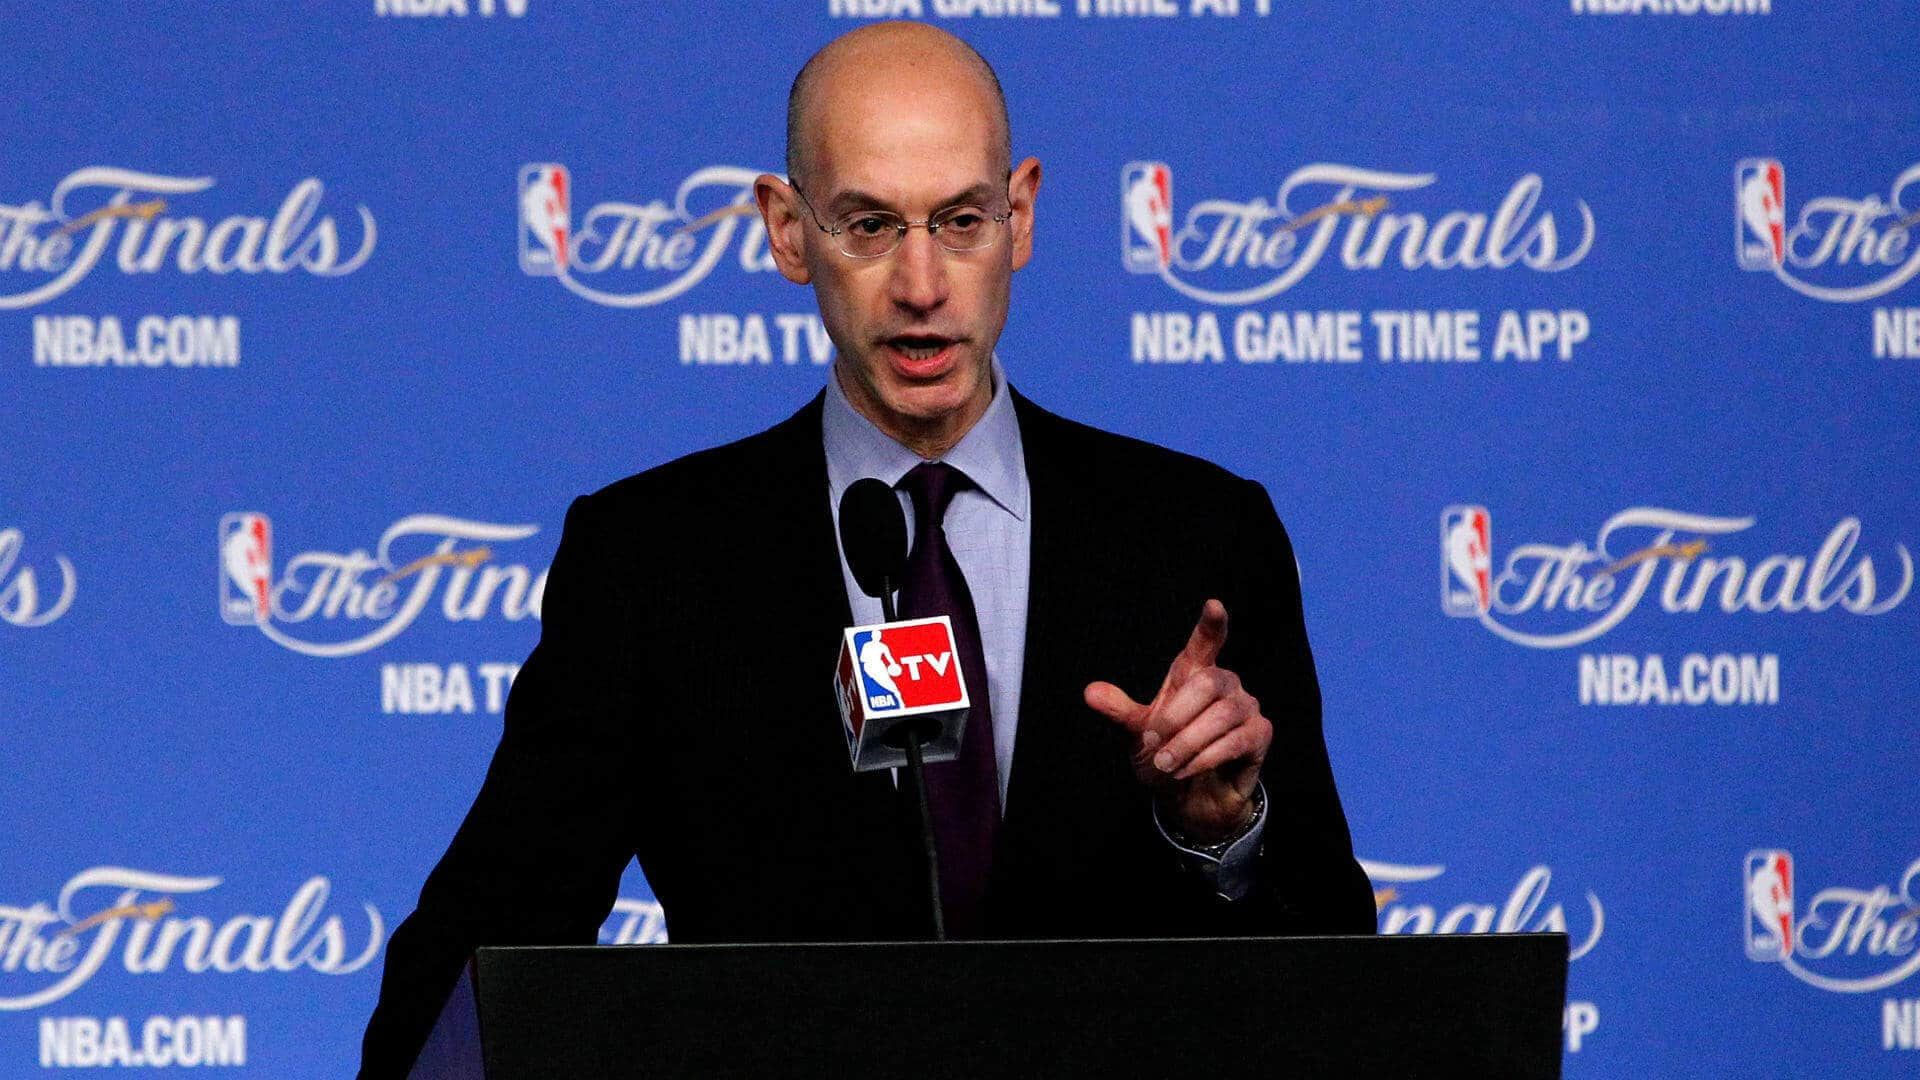 NBA Commissioner, Adam Silver is open to legalized sports betting.